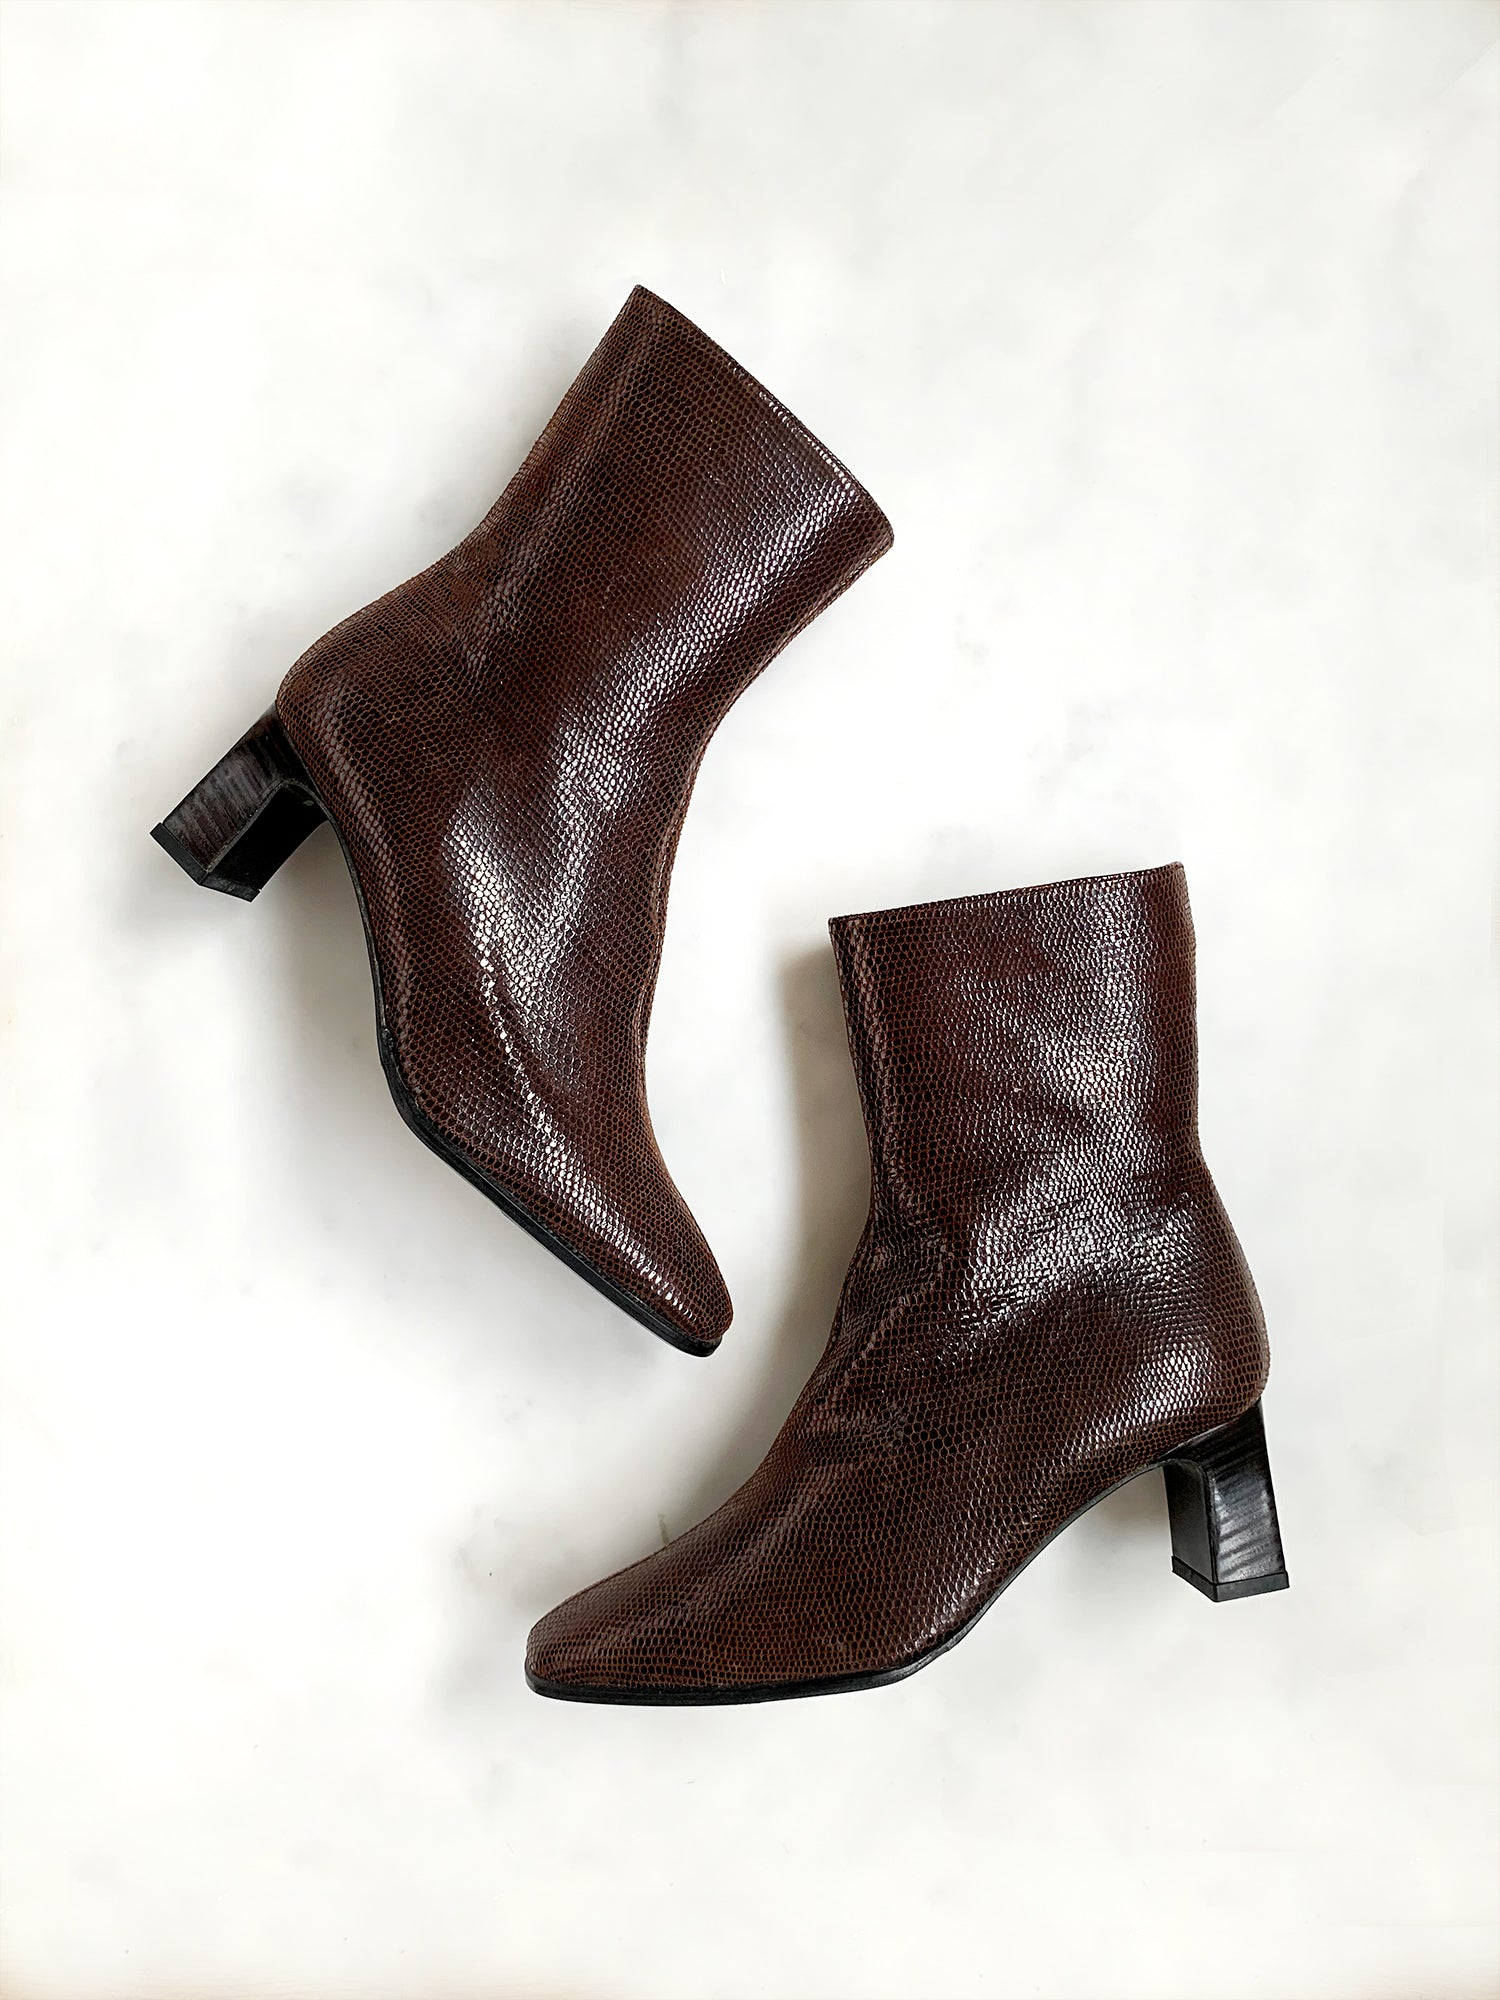 A pair of dark brown vintage 1990s ankle boots in mint unworn condition made from lizard effect leather